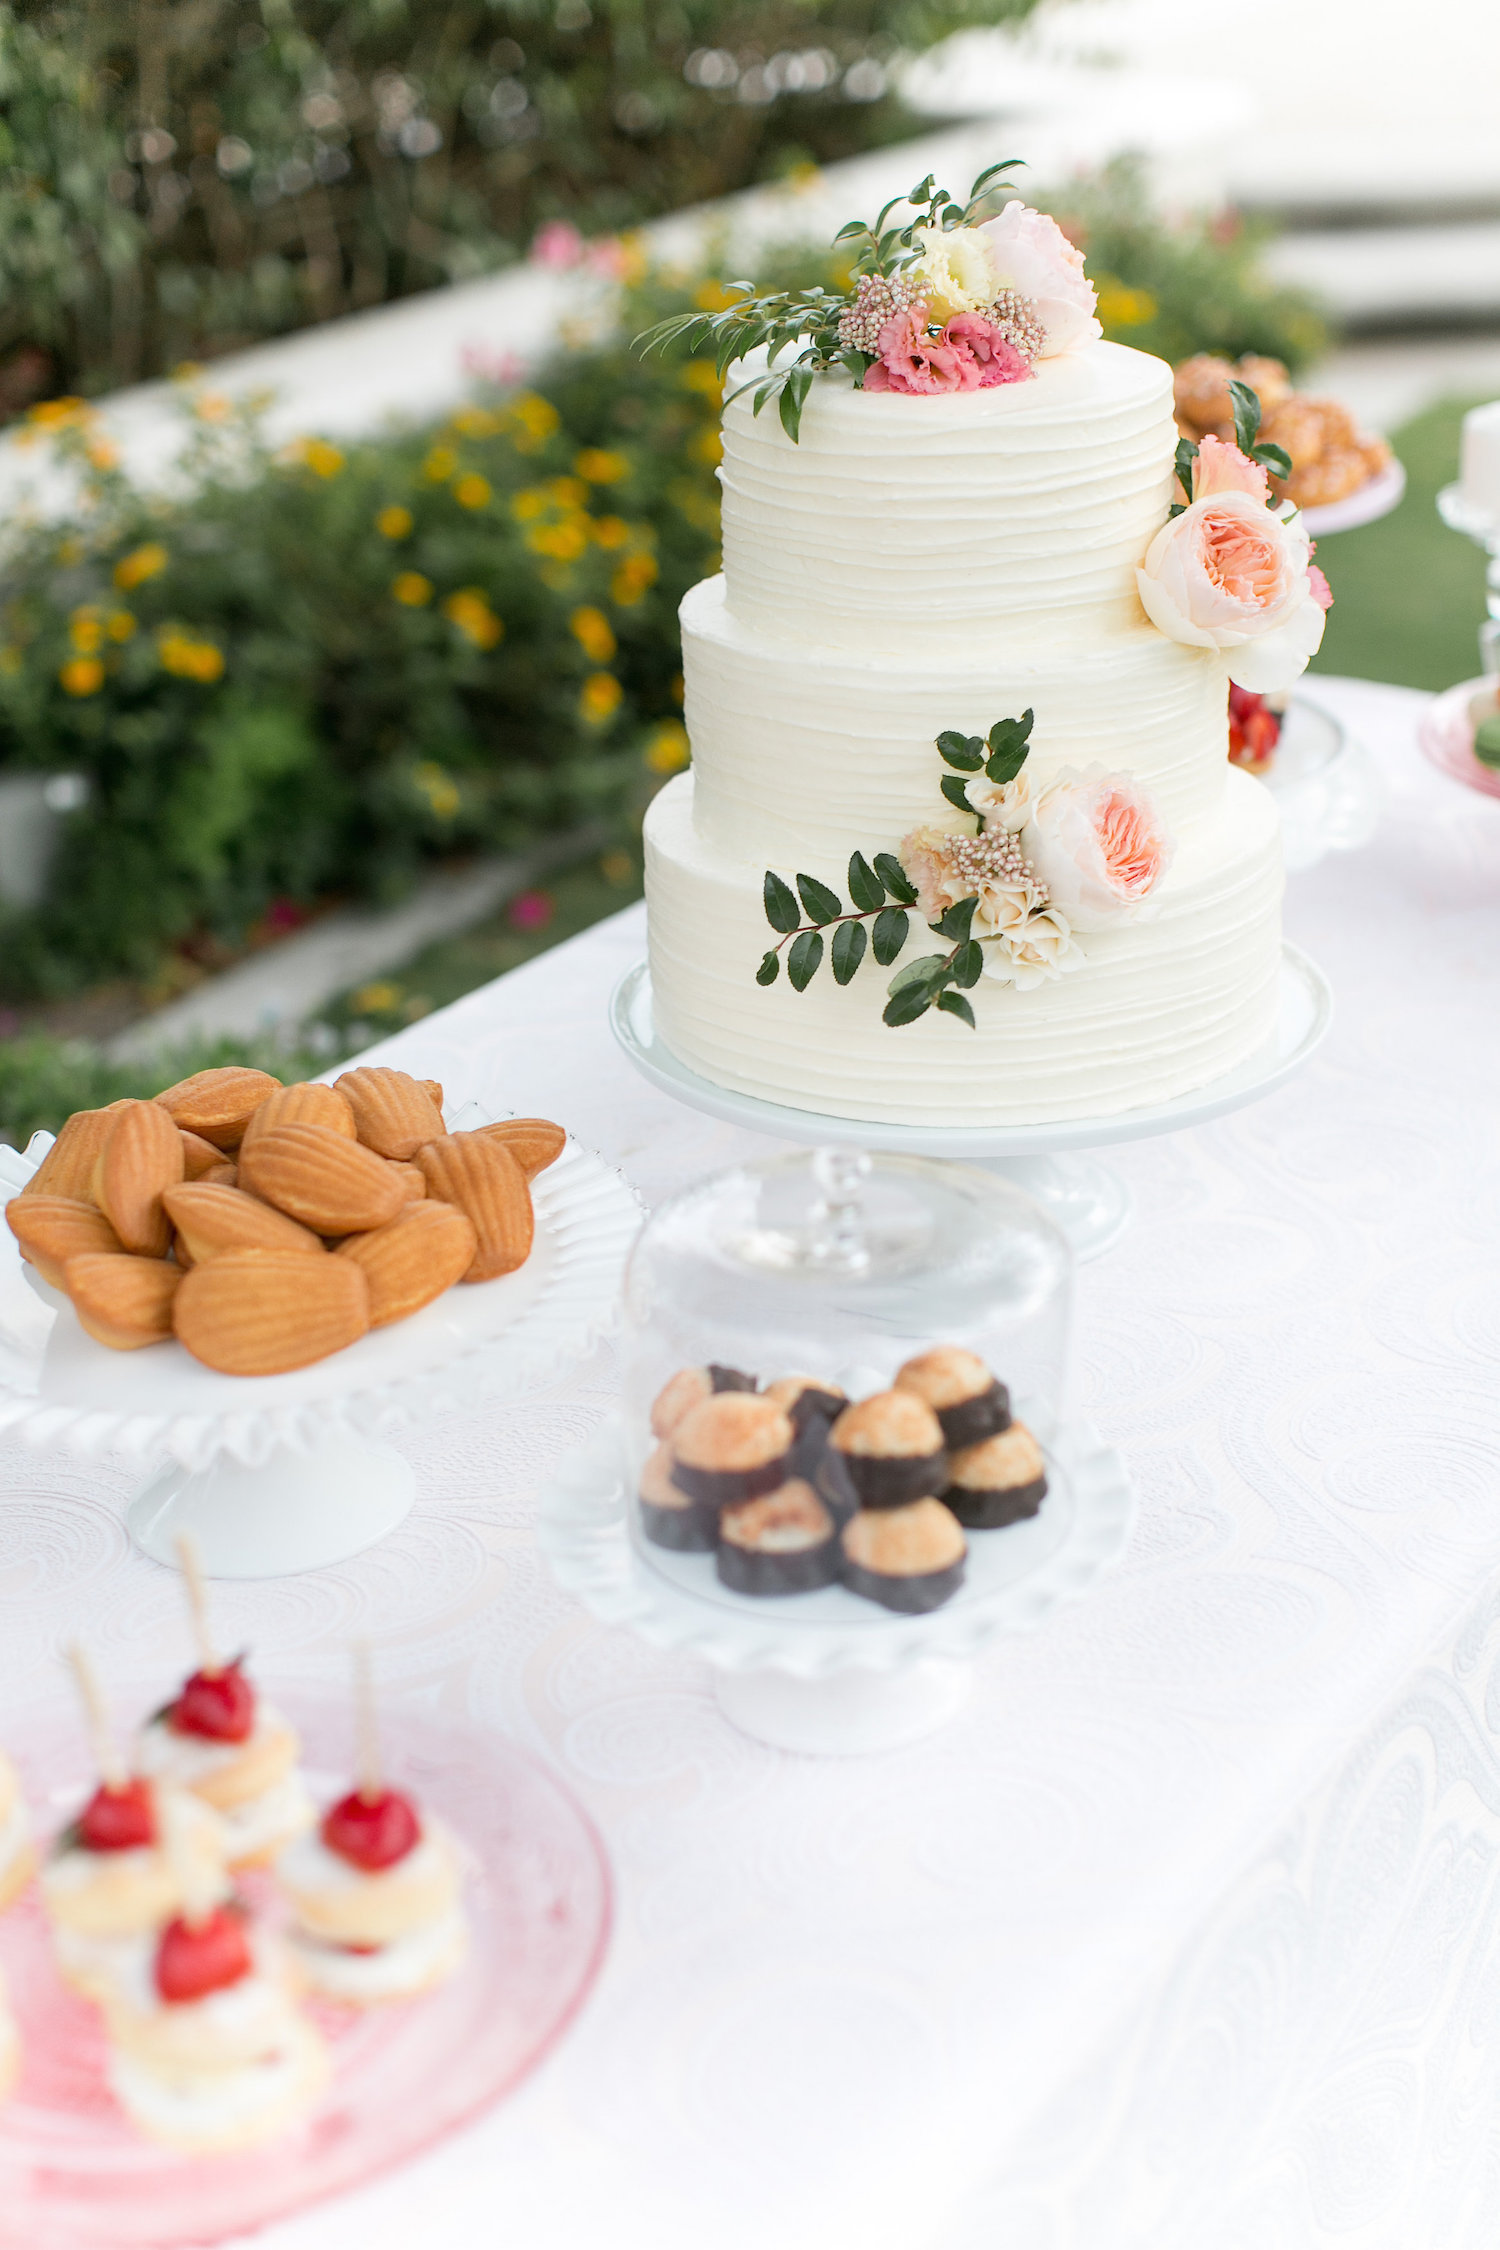 Garden rose wedding cake decorated by San Diego Florist, Compass Floral.